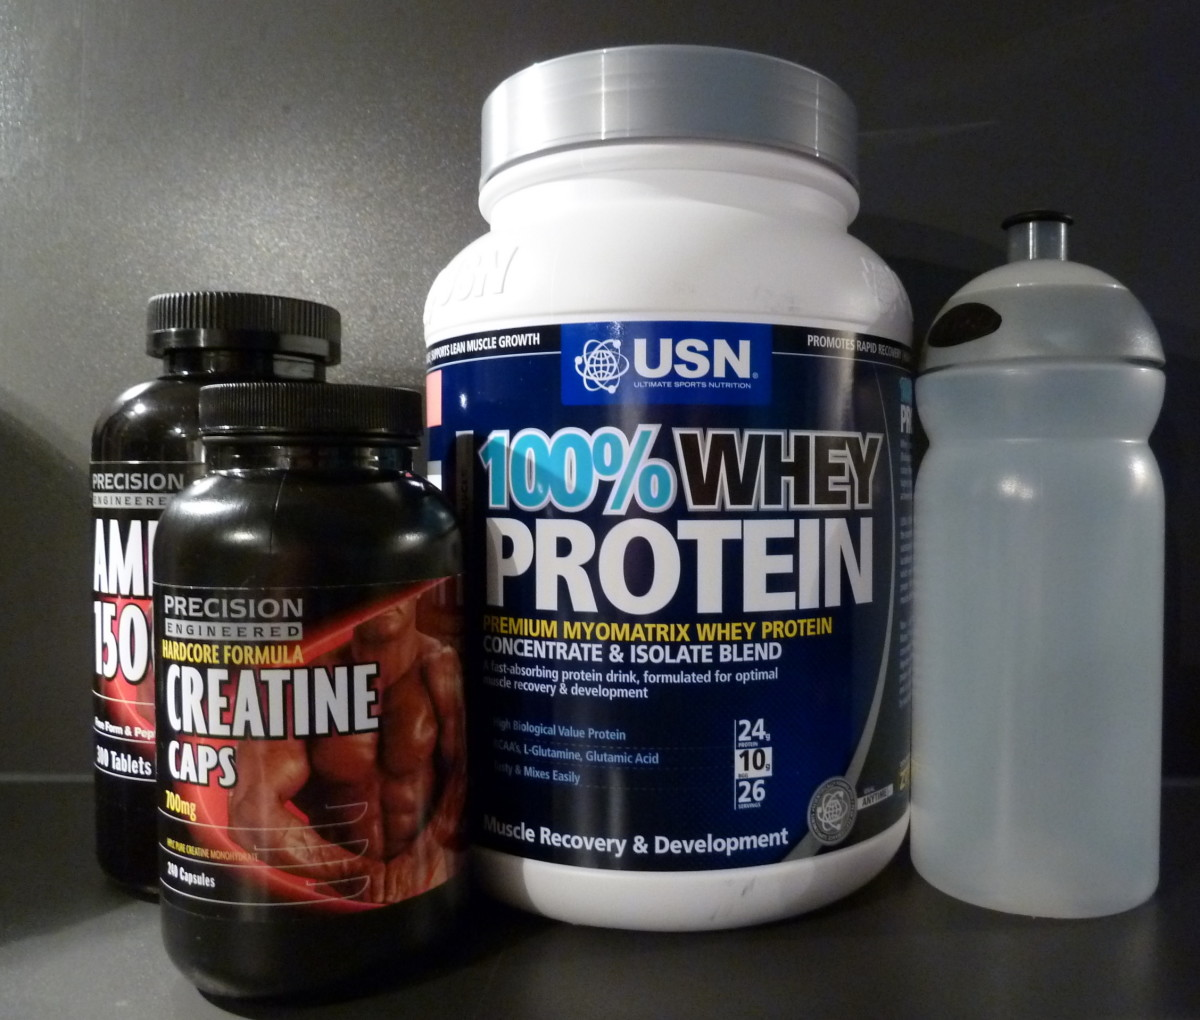 Supplements for contest's 1 week nutrition plan.